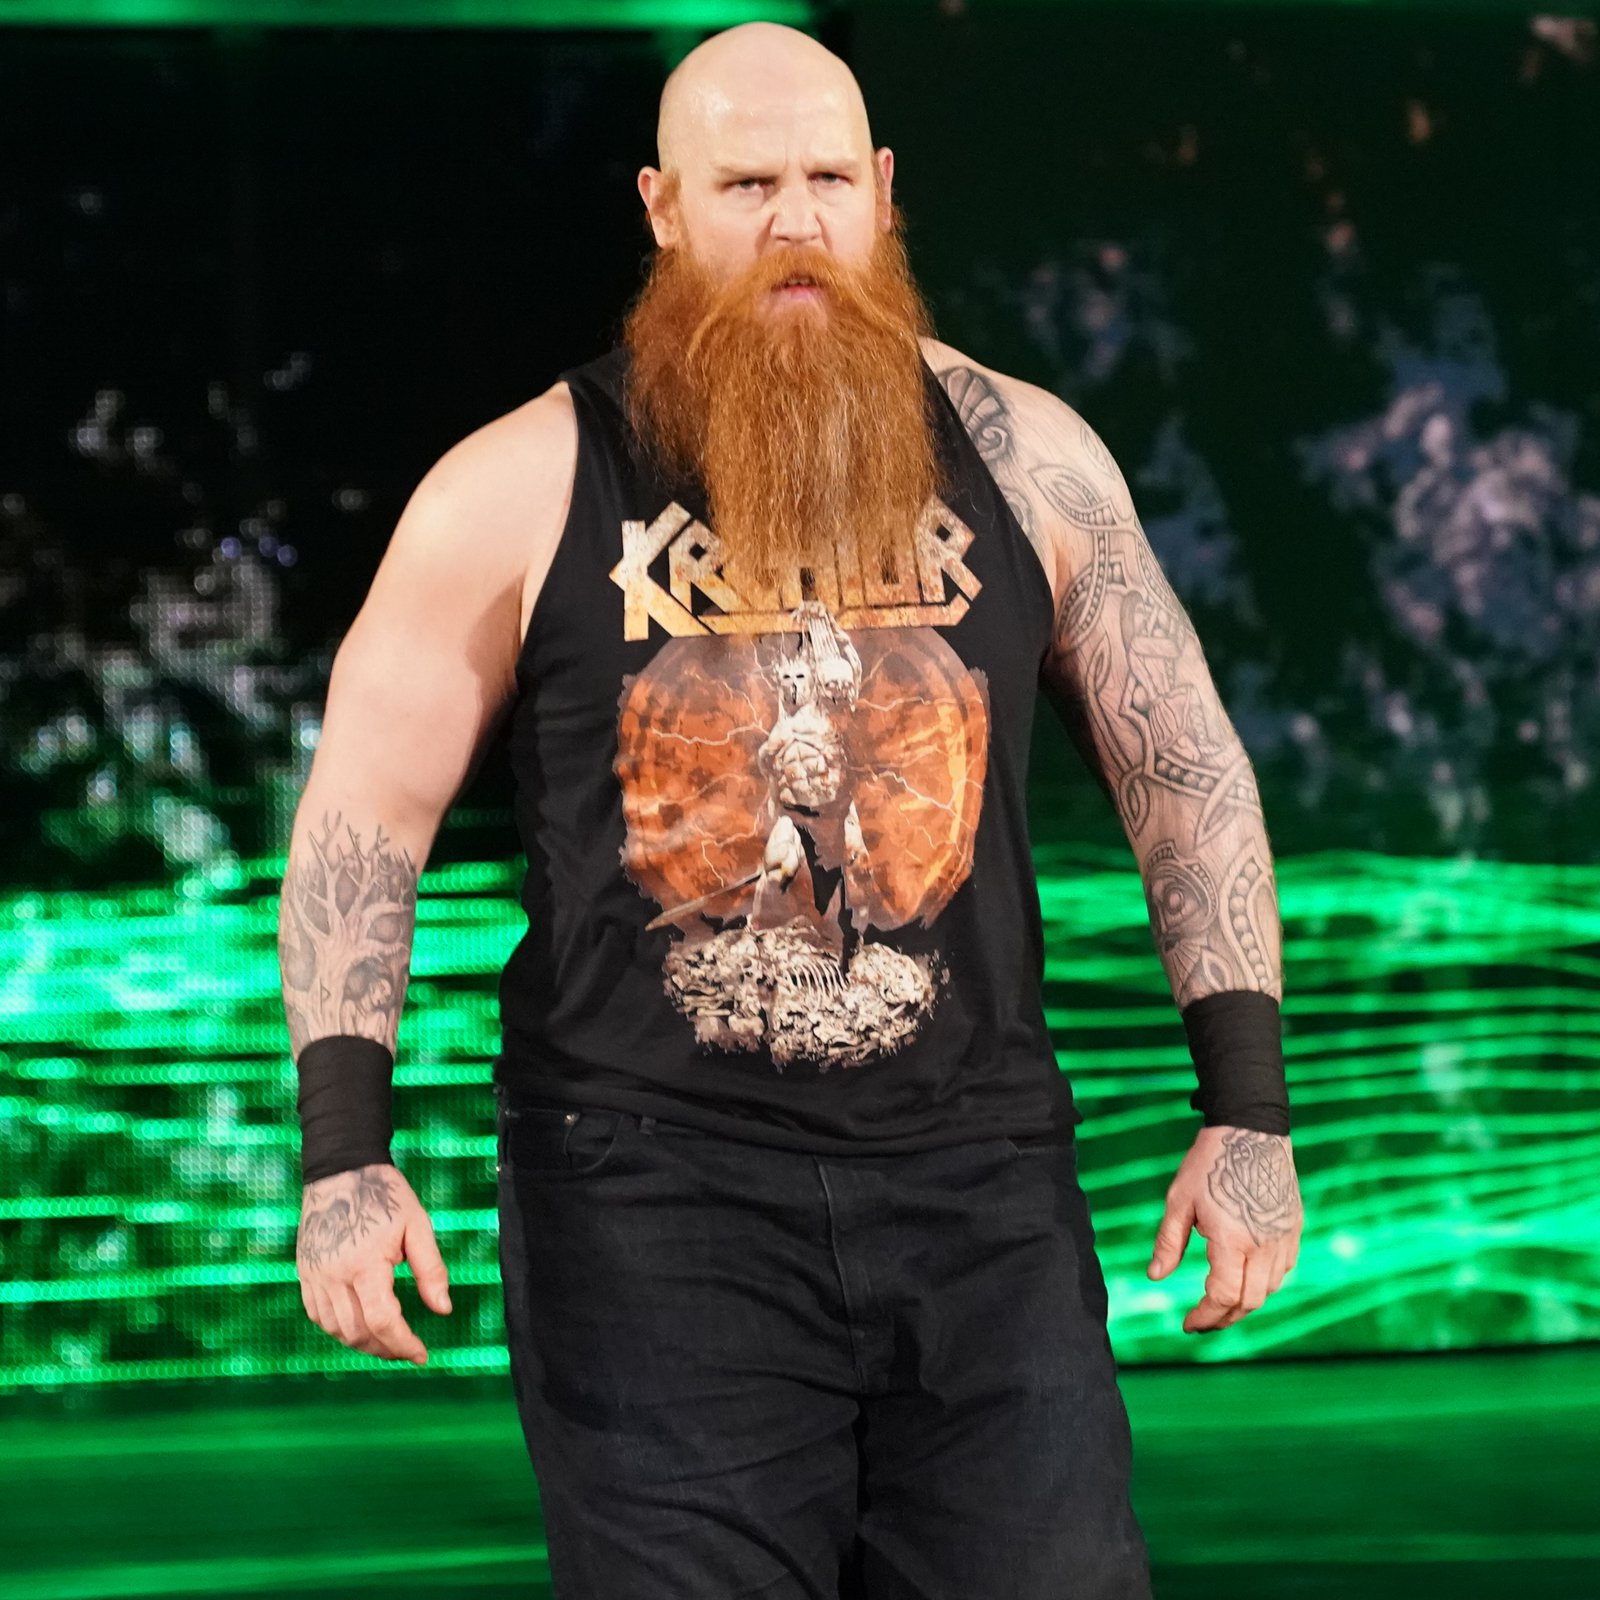 After The Dreadlocked Dynamo defeats The Swiss Cyborg, Rowan heads to the squared circle.